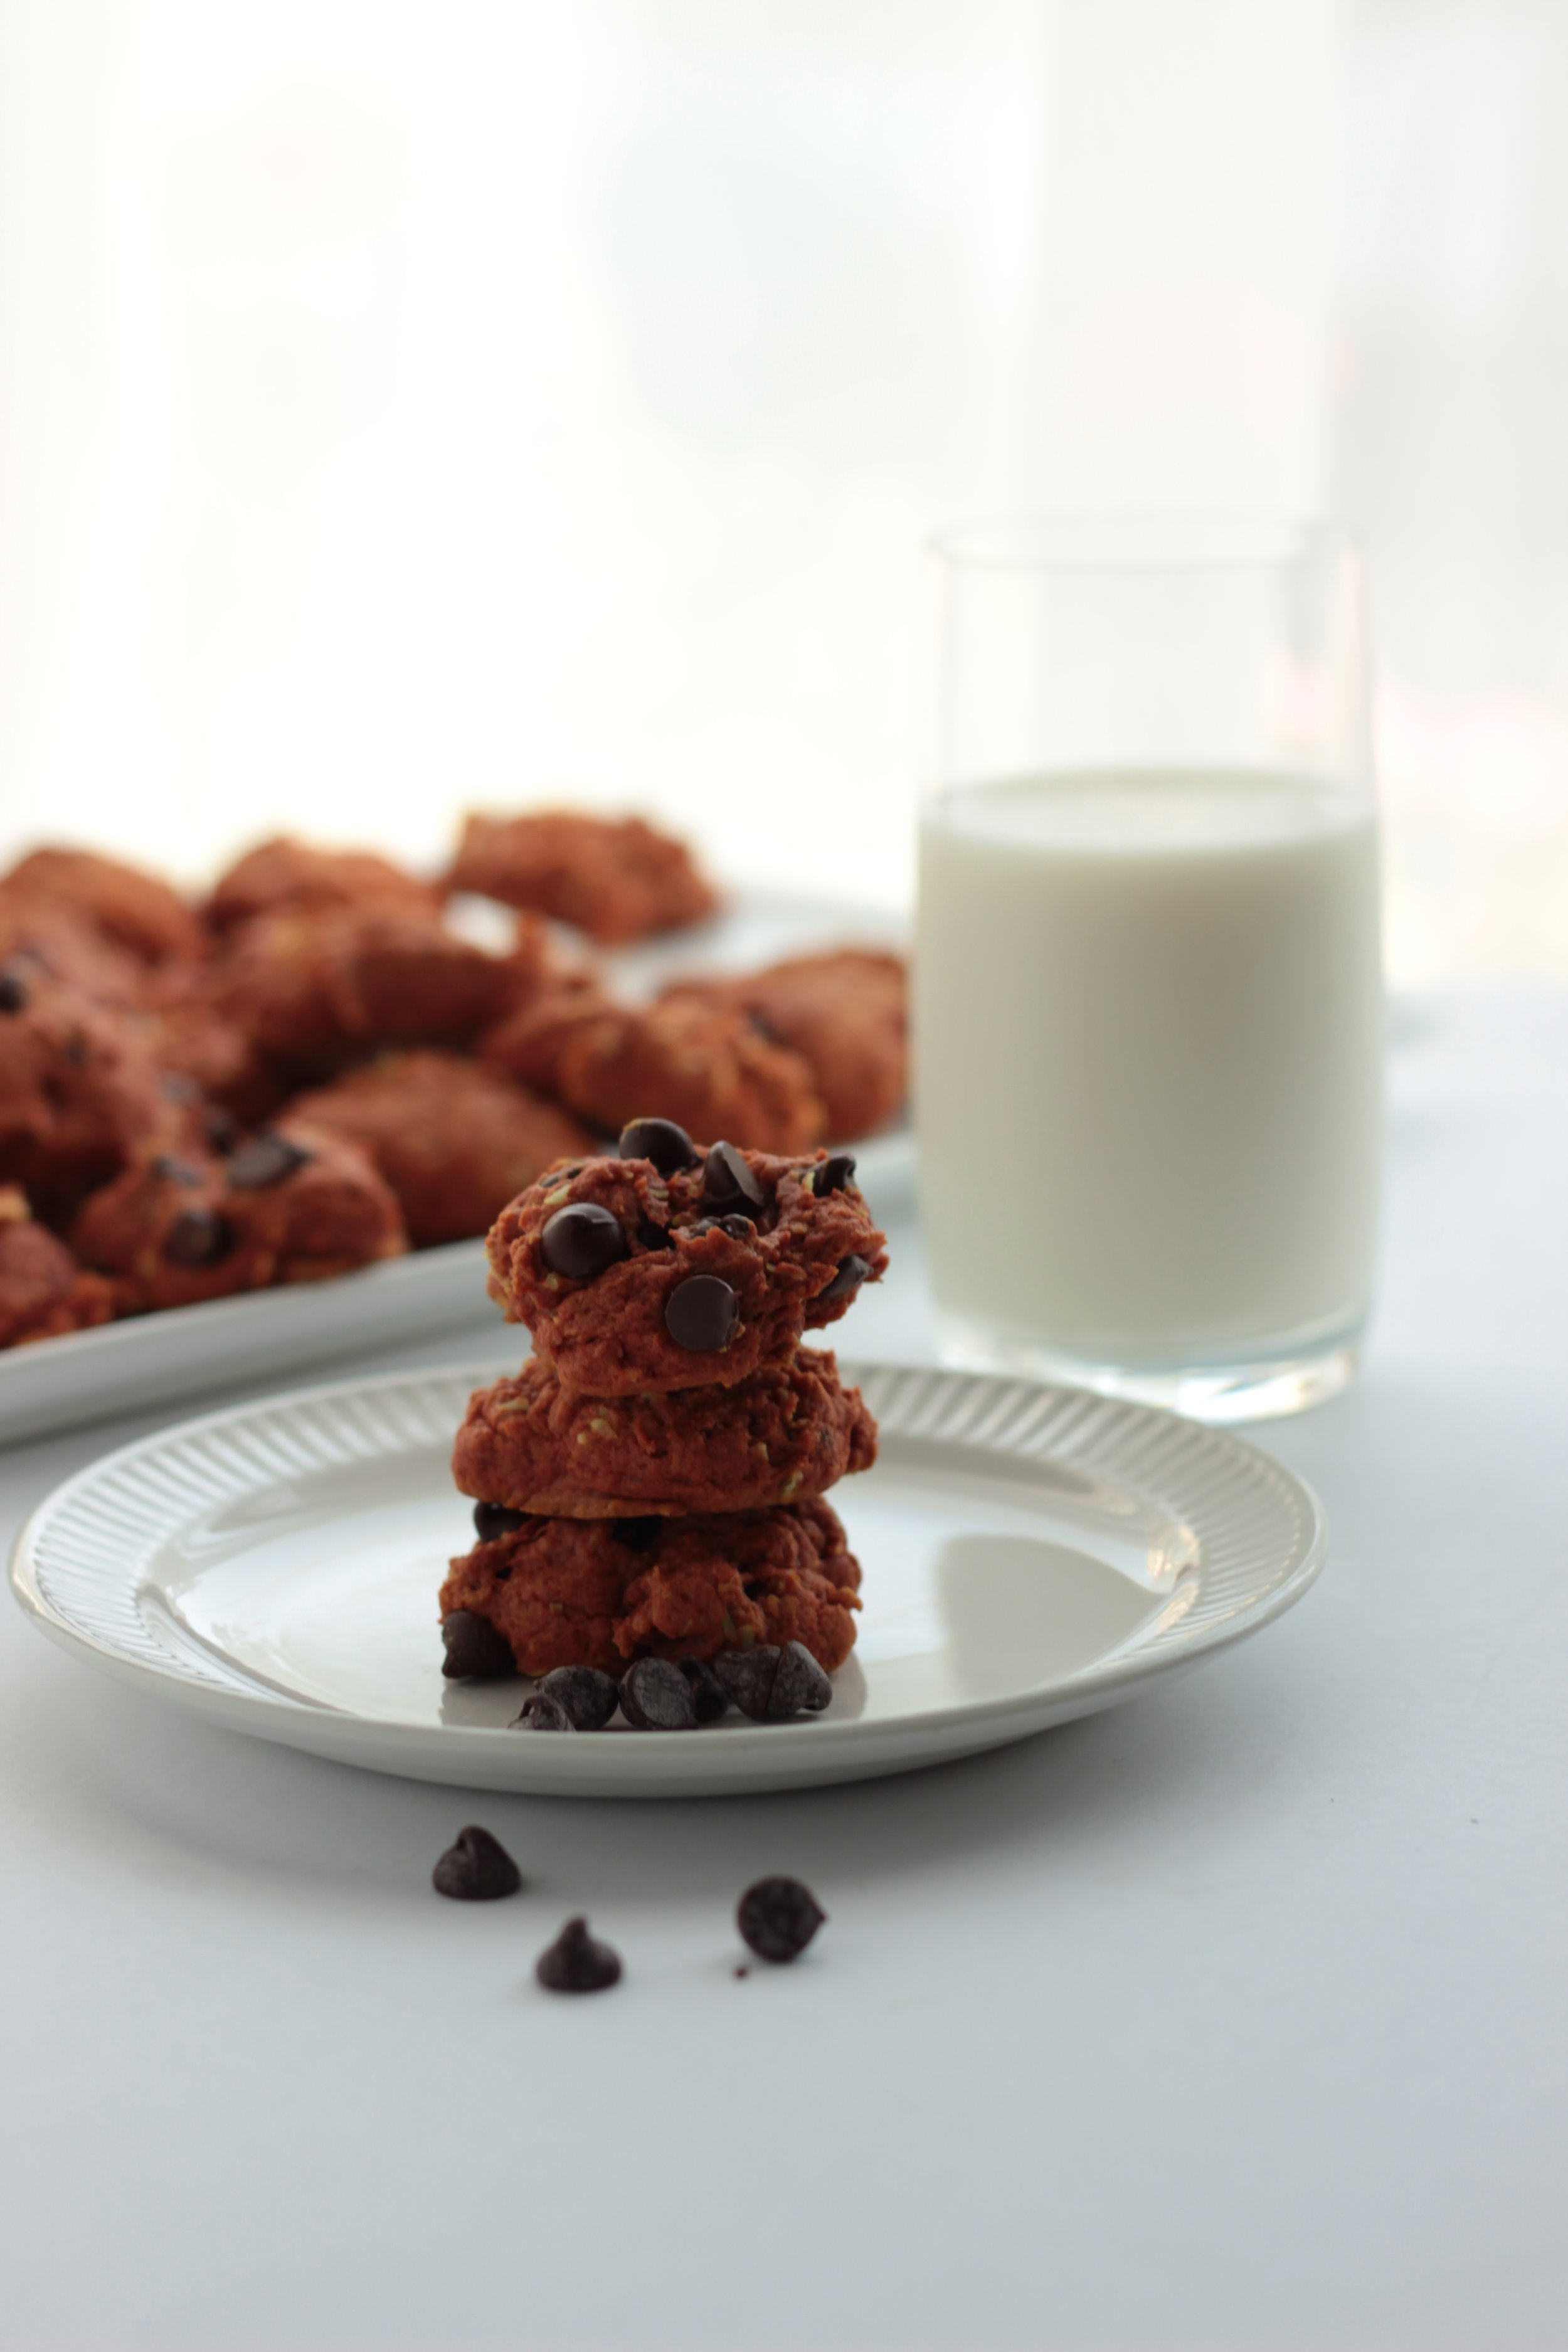 Stacking cookies up is always a great styling tip, but that alone was not enough to make these cookies look scrumptious.